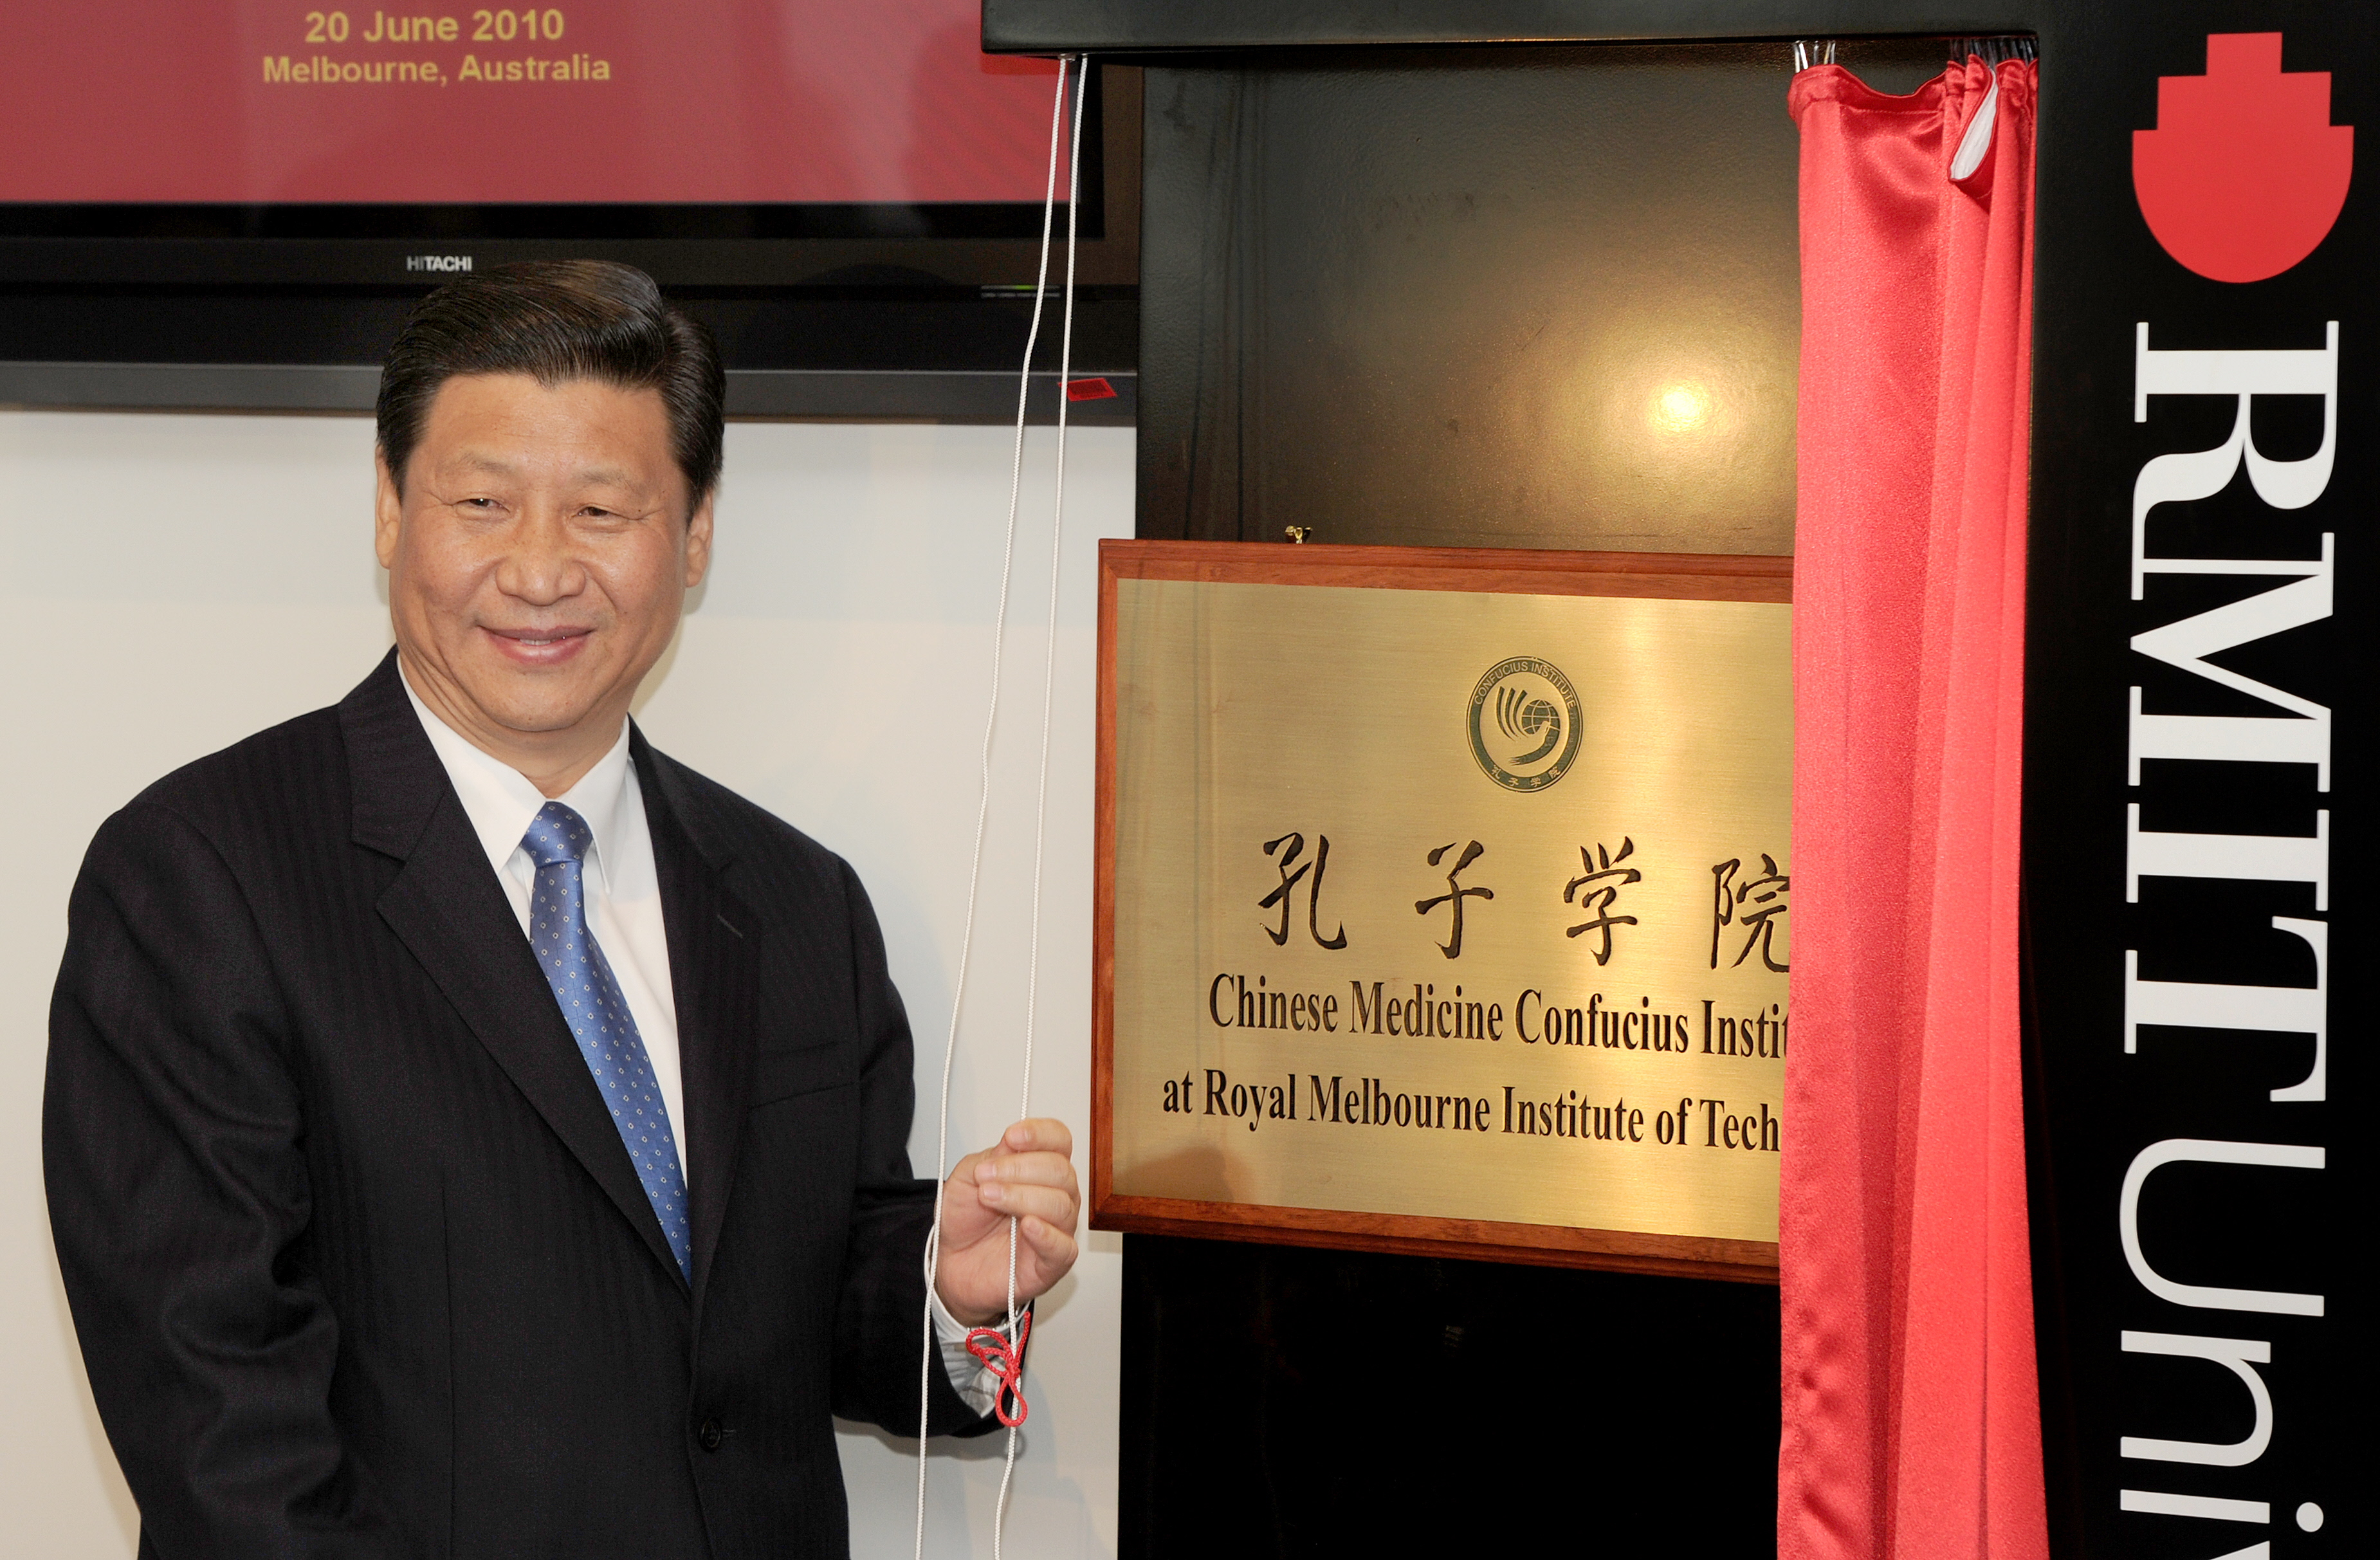 China's Vice President Xi Jinping unveils the plaque at the opening of Australia's first Chinese Medicine Confucius Institute at the RMIT University in Melbourne on June 20, 2010. The Confucius Institute will promote the study of Chinese culture and language with a focus on Chinese Medicine - one of the world's oldest and longest standing healthcare systems, tracing back more than 2,500 years. Xi is on a five-day visit to Australia. AFP PHOTO/William WEST (Photo credit should read WILLIAM WEST/AFP via Getty Images)